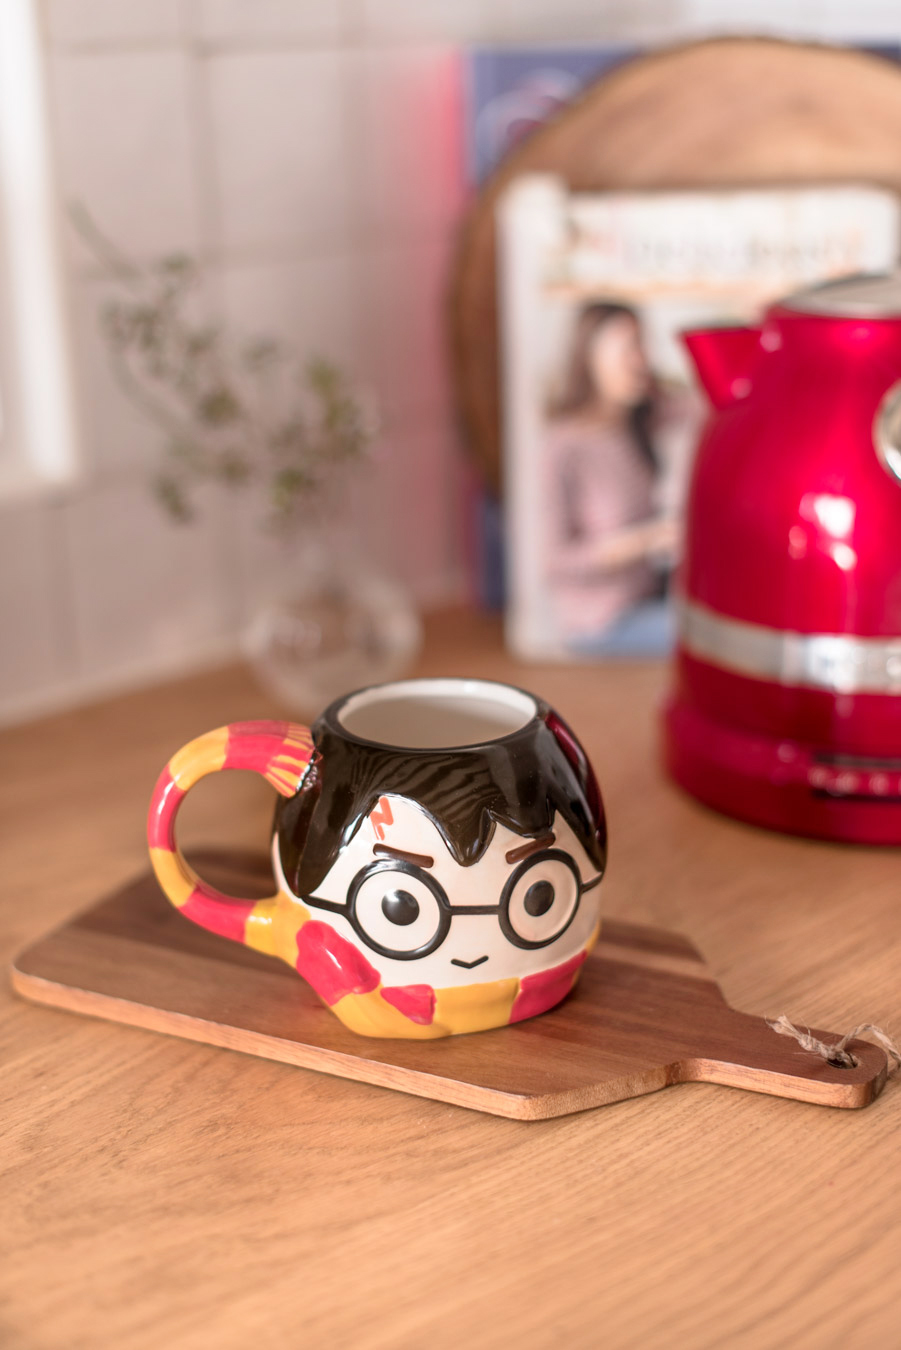 Blog-Mode-And-The-City-Lifestyle-Cinq-Petites-Choses-255-tasse-HP